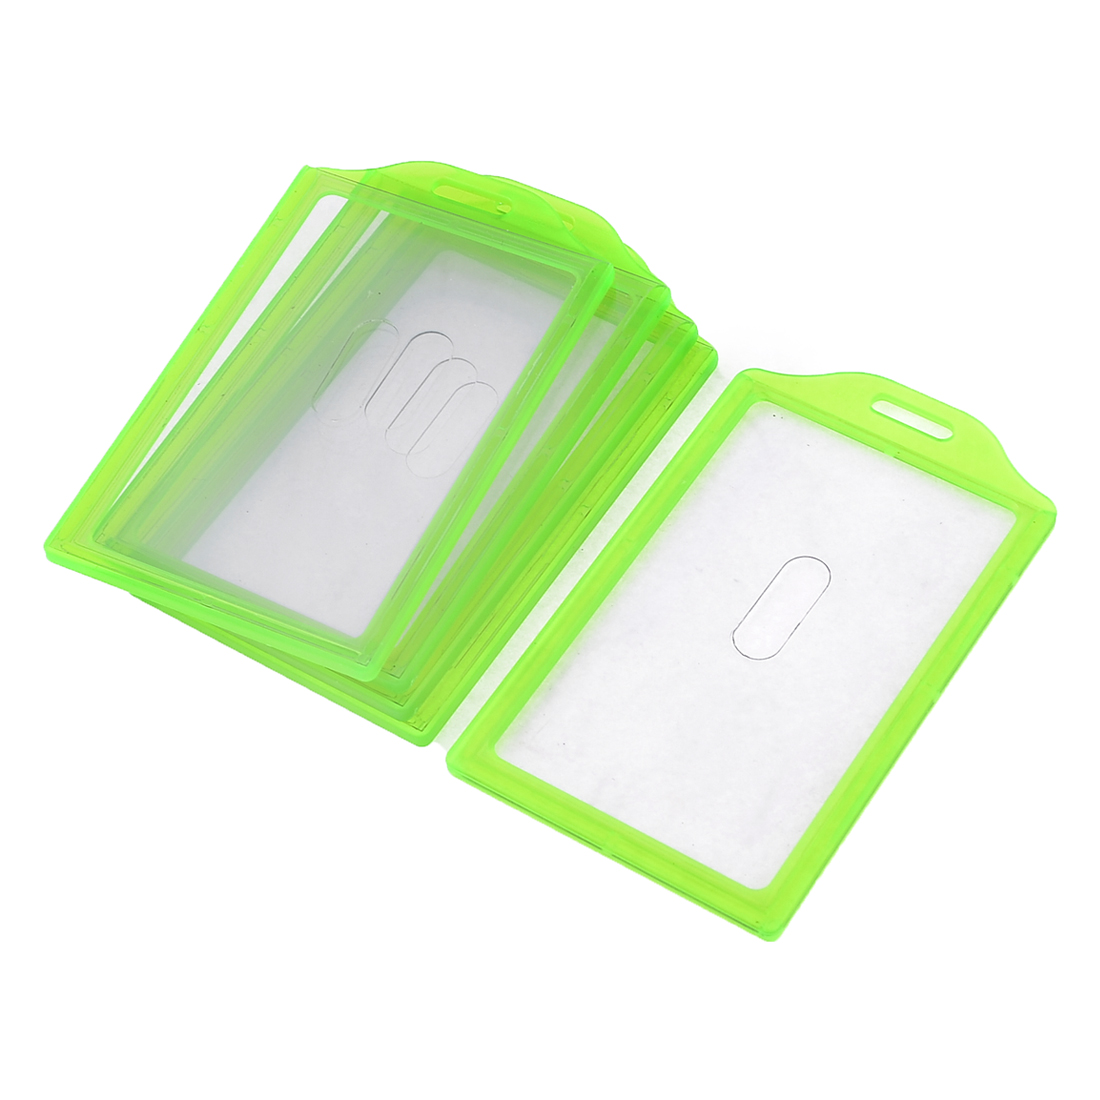 5pcs Green Plastic Frame Vertical School Slide ID Card Holder 84mm x 52mm